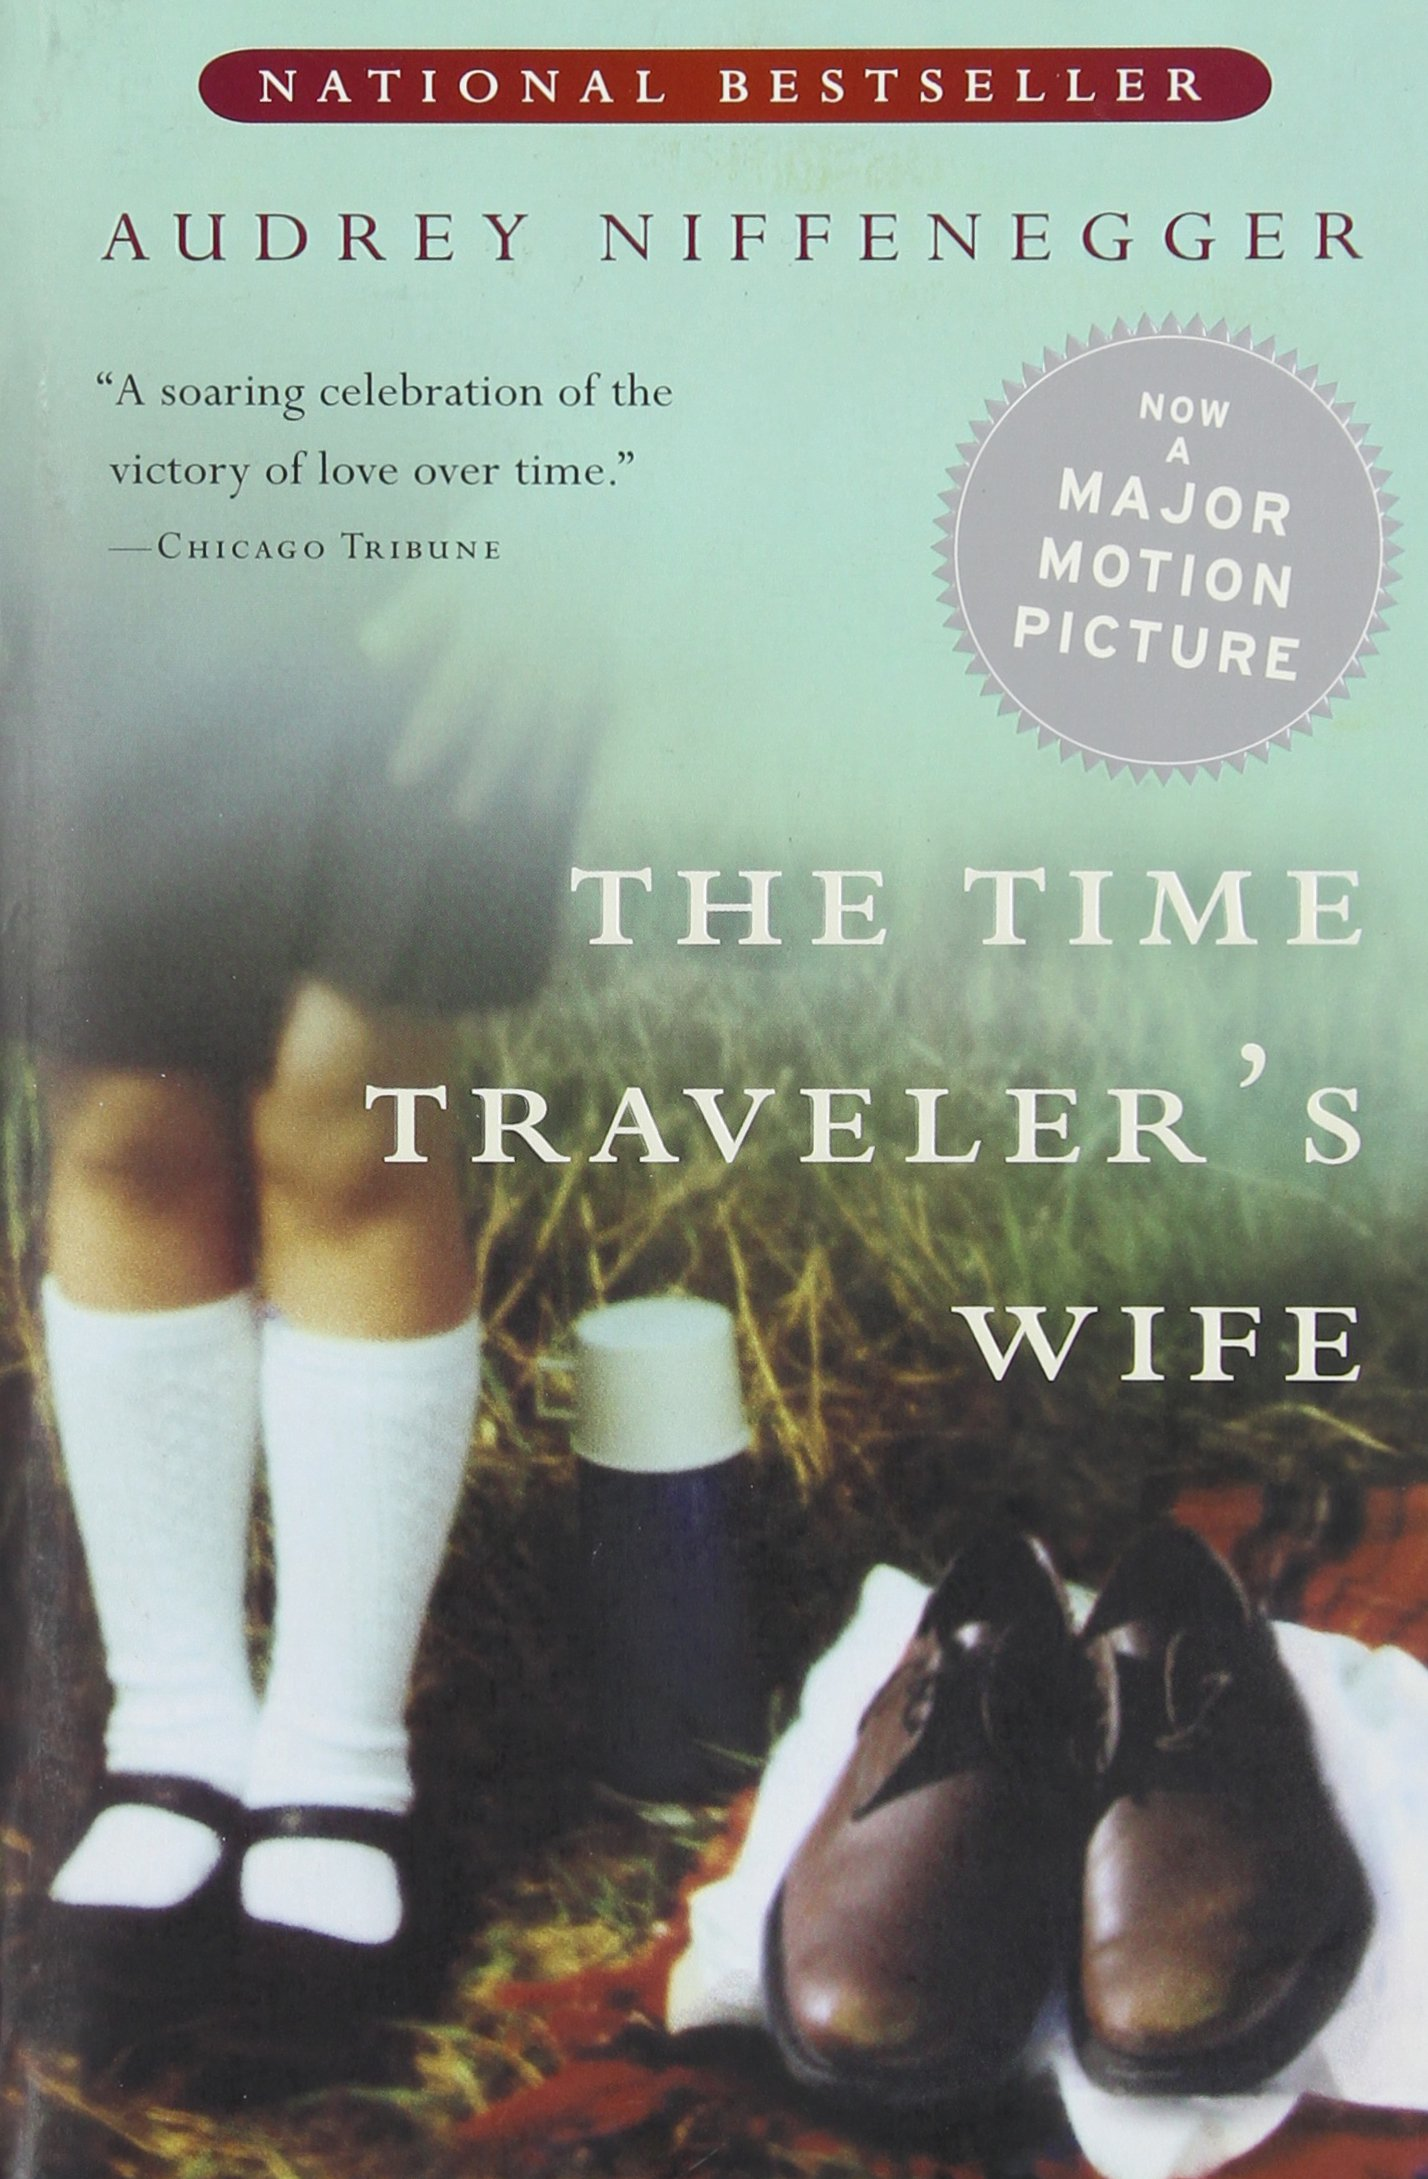 Book Cover - Time Traveler's Wife by Audrey Niffenegger